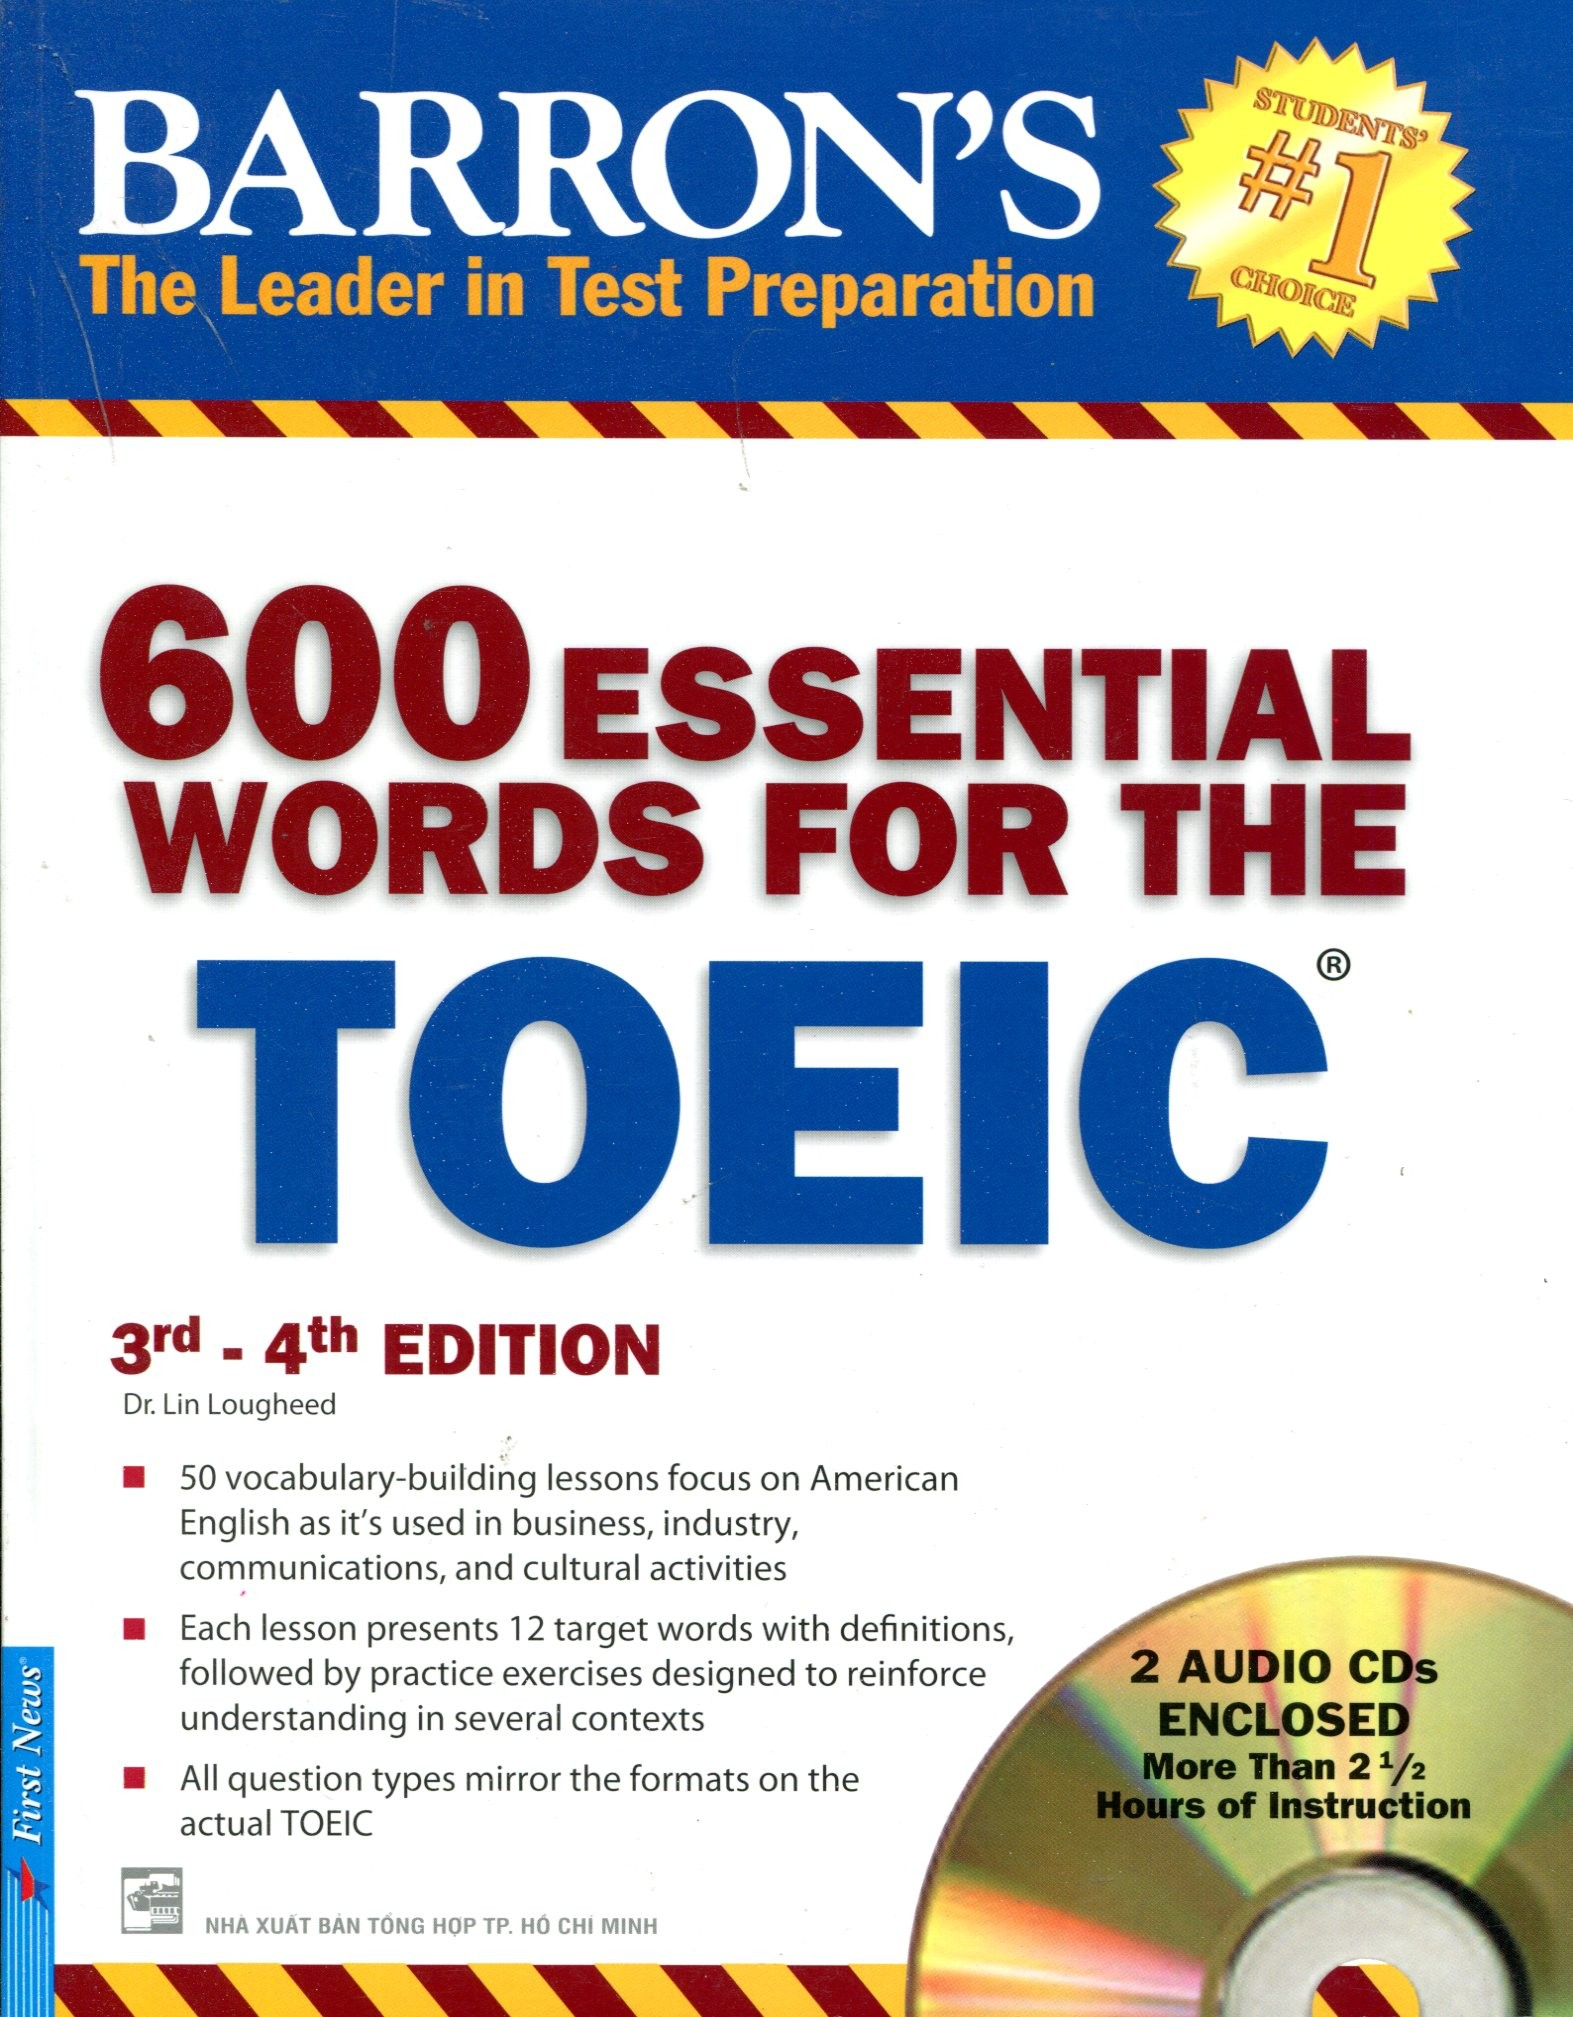 600-essential-words-for-the-toeic-test